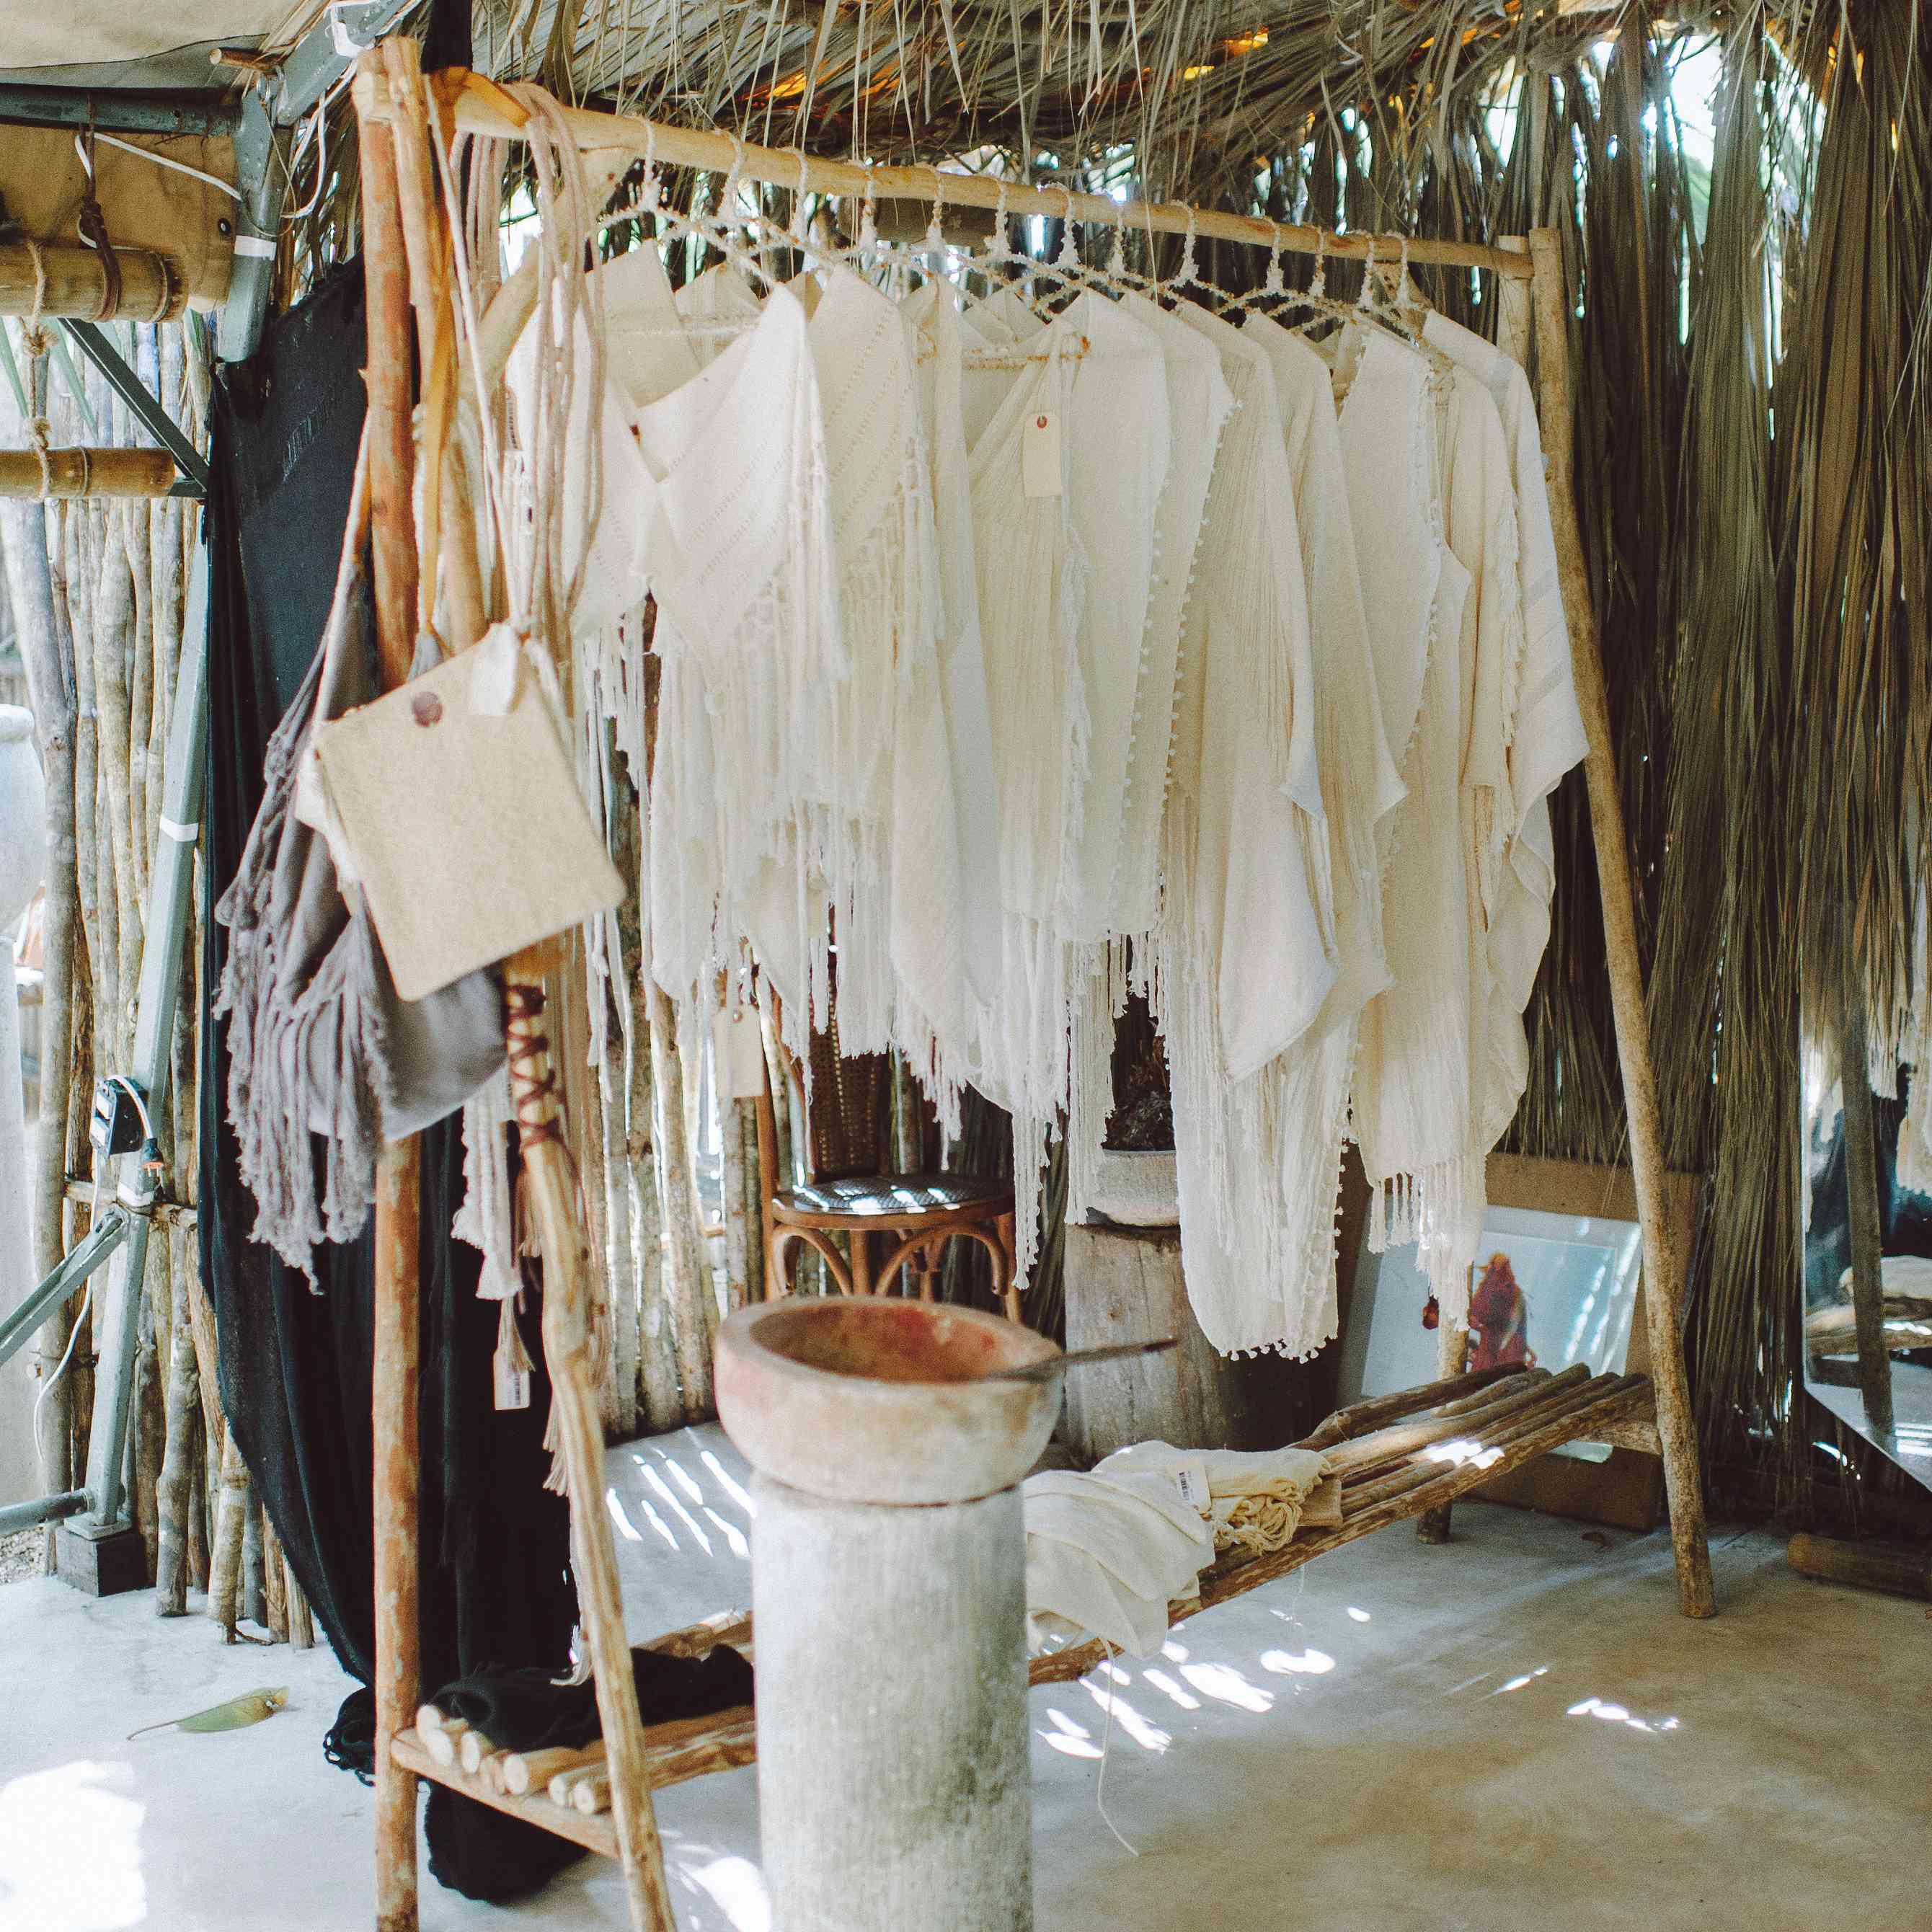 White clothes hanging on wooden rack